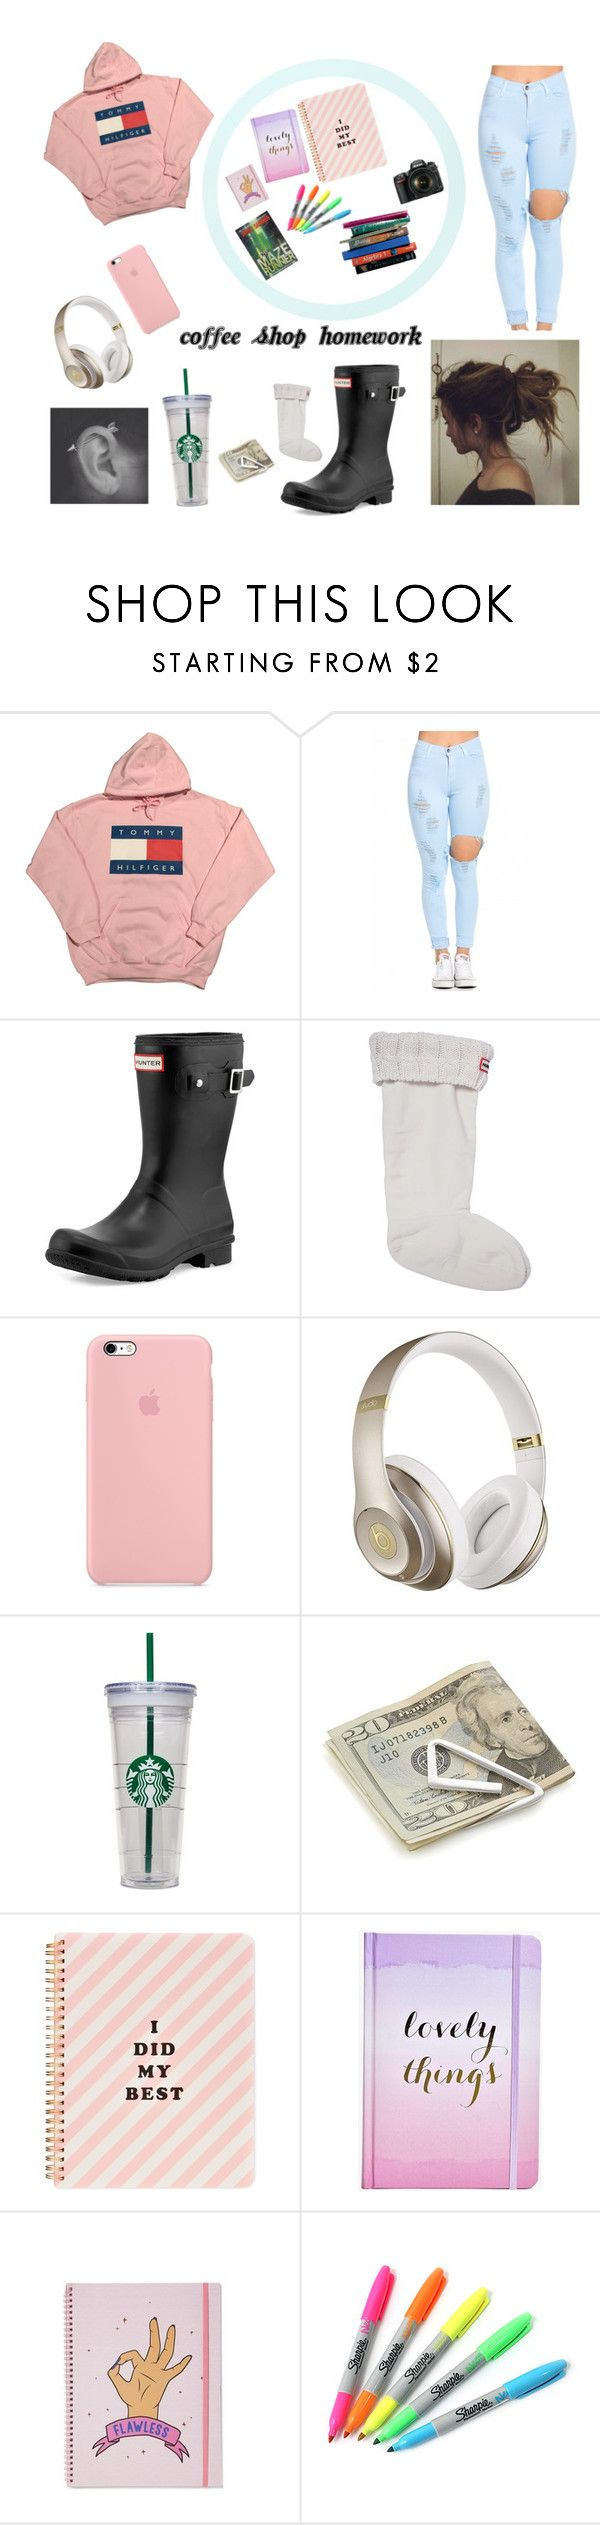 """""""Coffee shop homework"""" by kylieirwin11 ❤ liked on Polyvore featuring Hunter, Beats by Dr. Dre, Crate and Barrel, ban.do, Boohoo, Sharpie and 7 For All Mankind"""